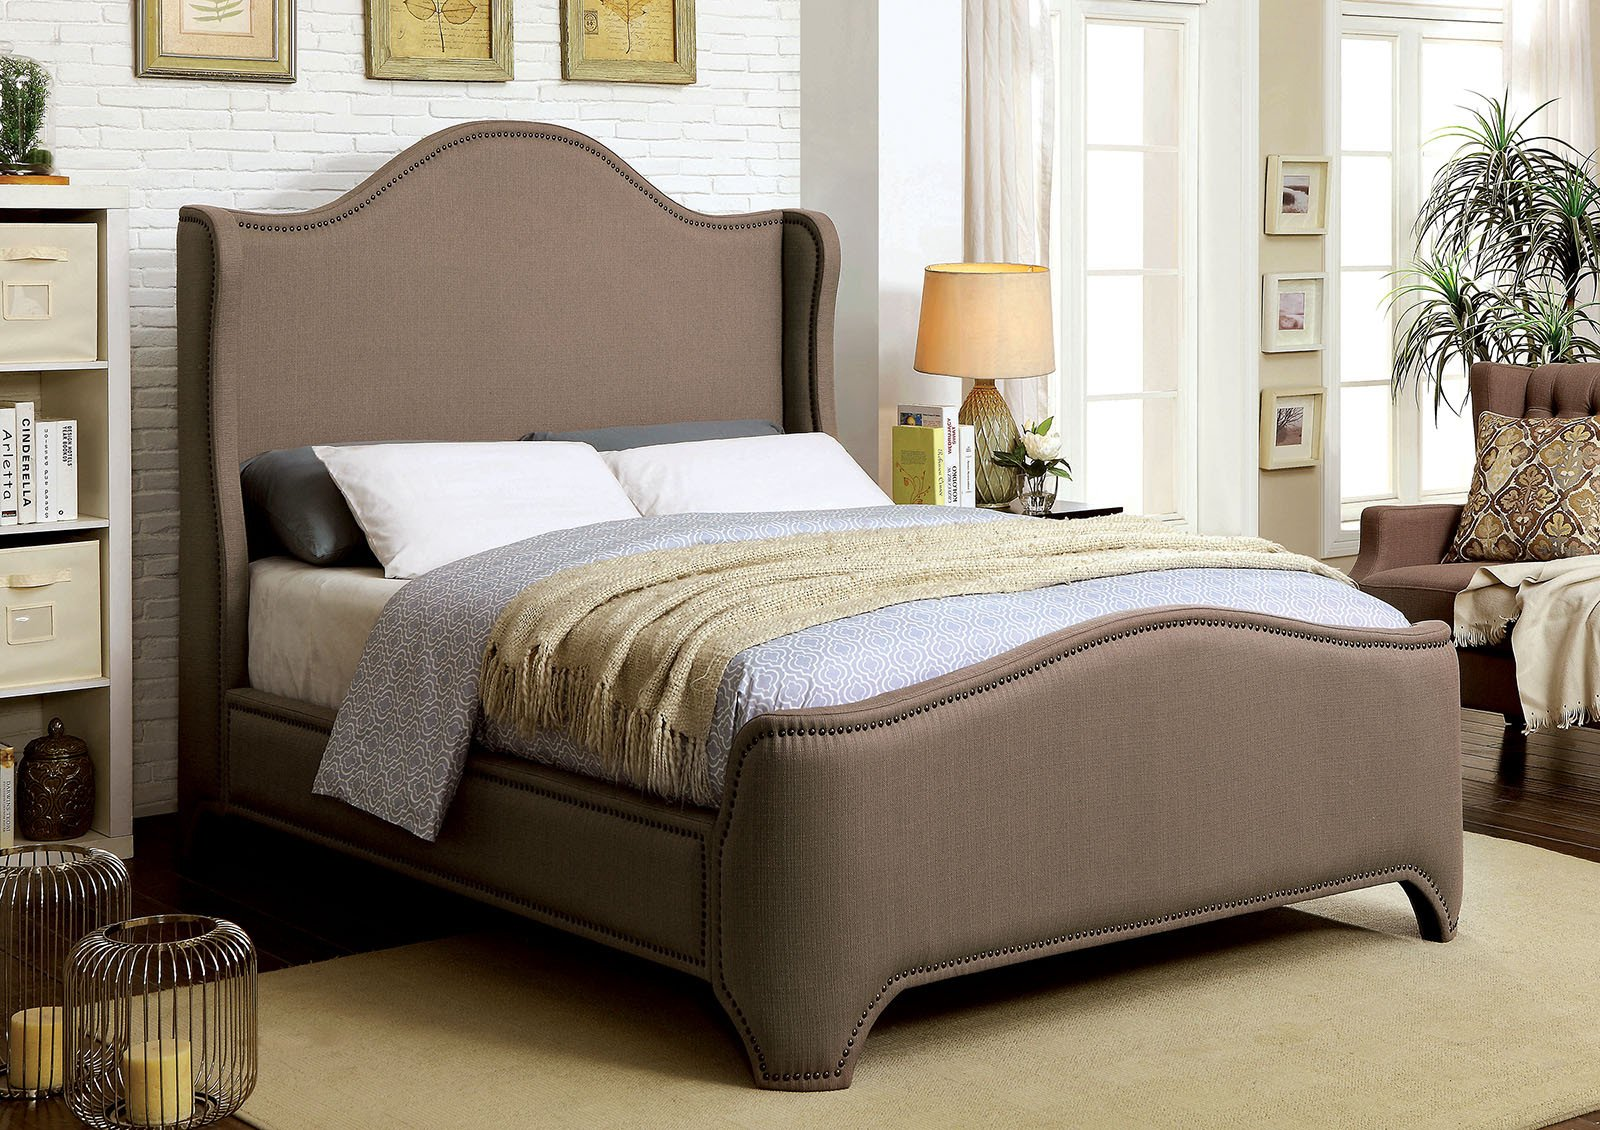 Bedroom Colors with Brown Furniture Lovely Bedroom Bed Contemporary Full Size Bed Brown Padded Fabric Plush fort Relax Wingback Design